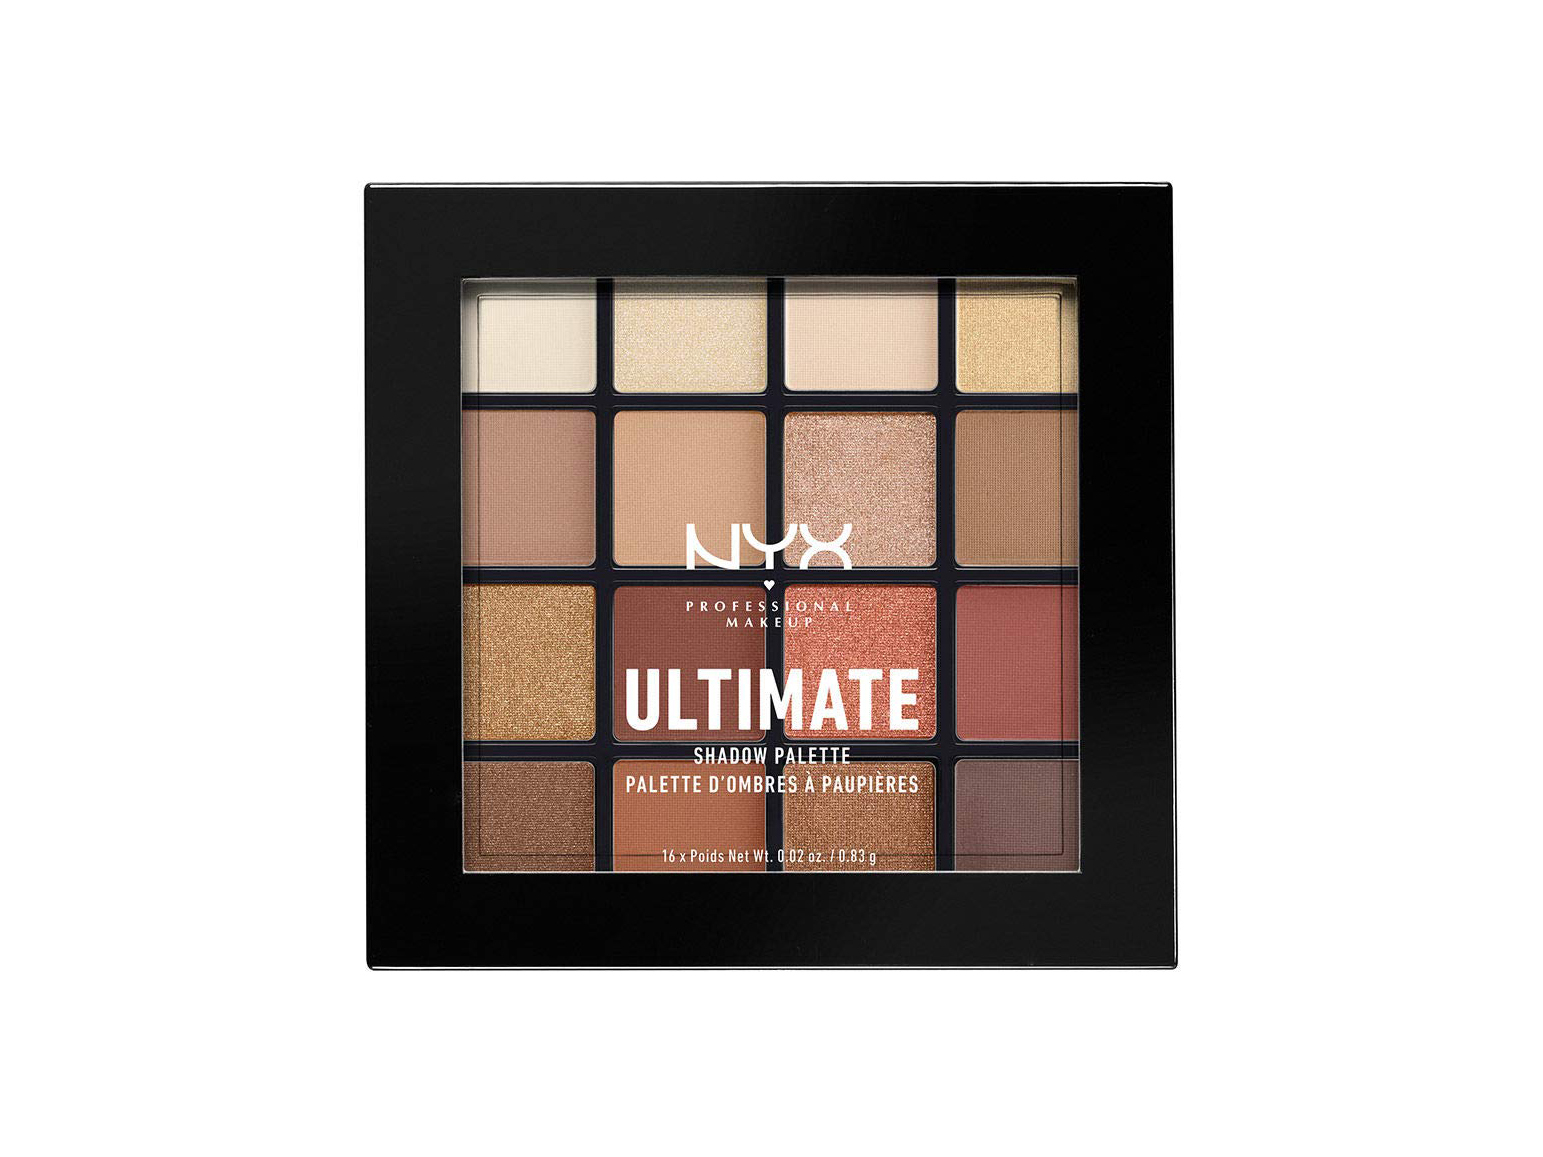 NYX Ultimate Shadow Palette, Eyeshadow Palette, Warm Neutrals